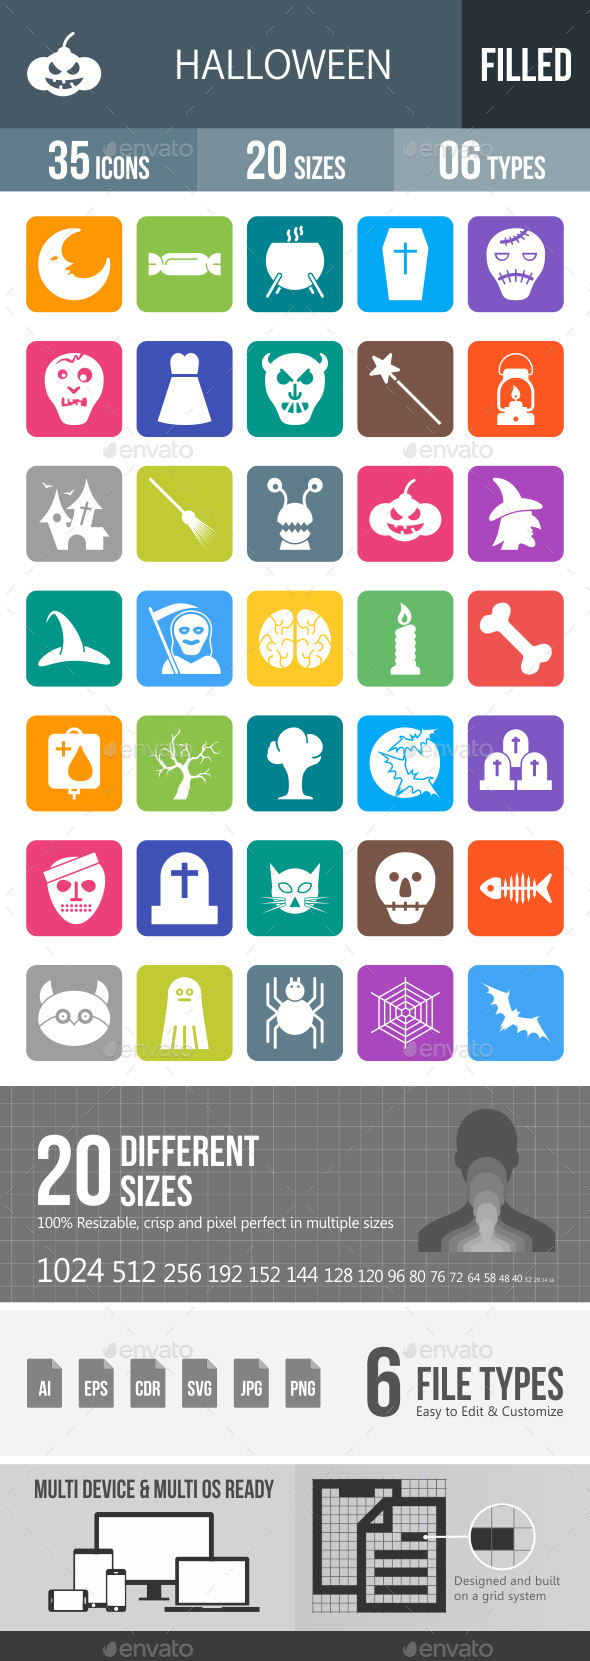 Halloween Glyph Inverted Icons - Icons